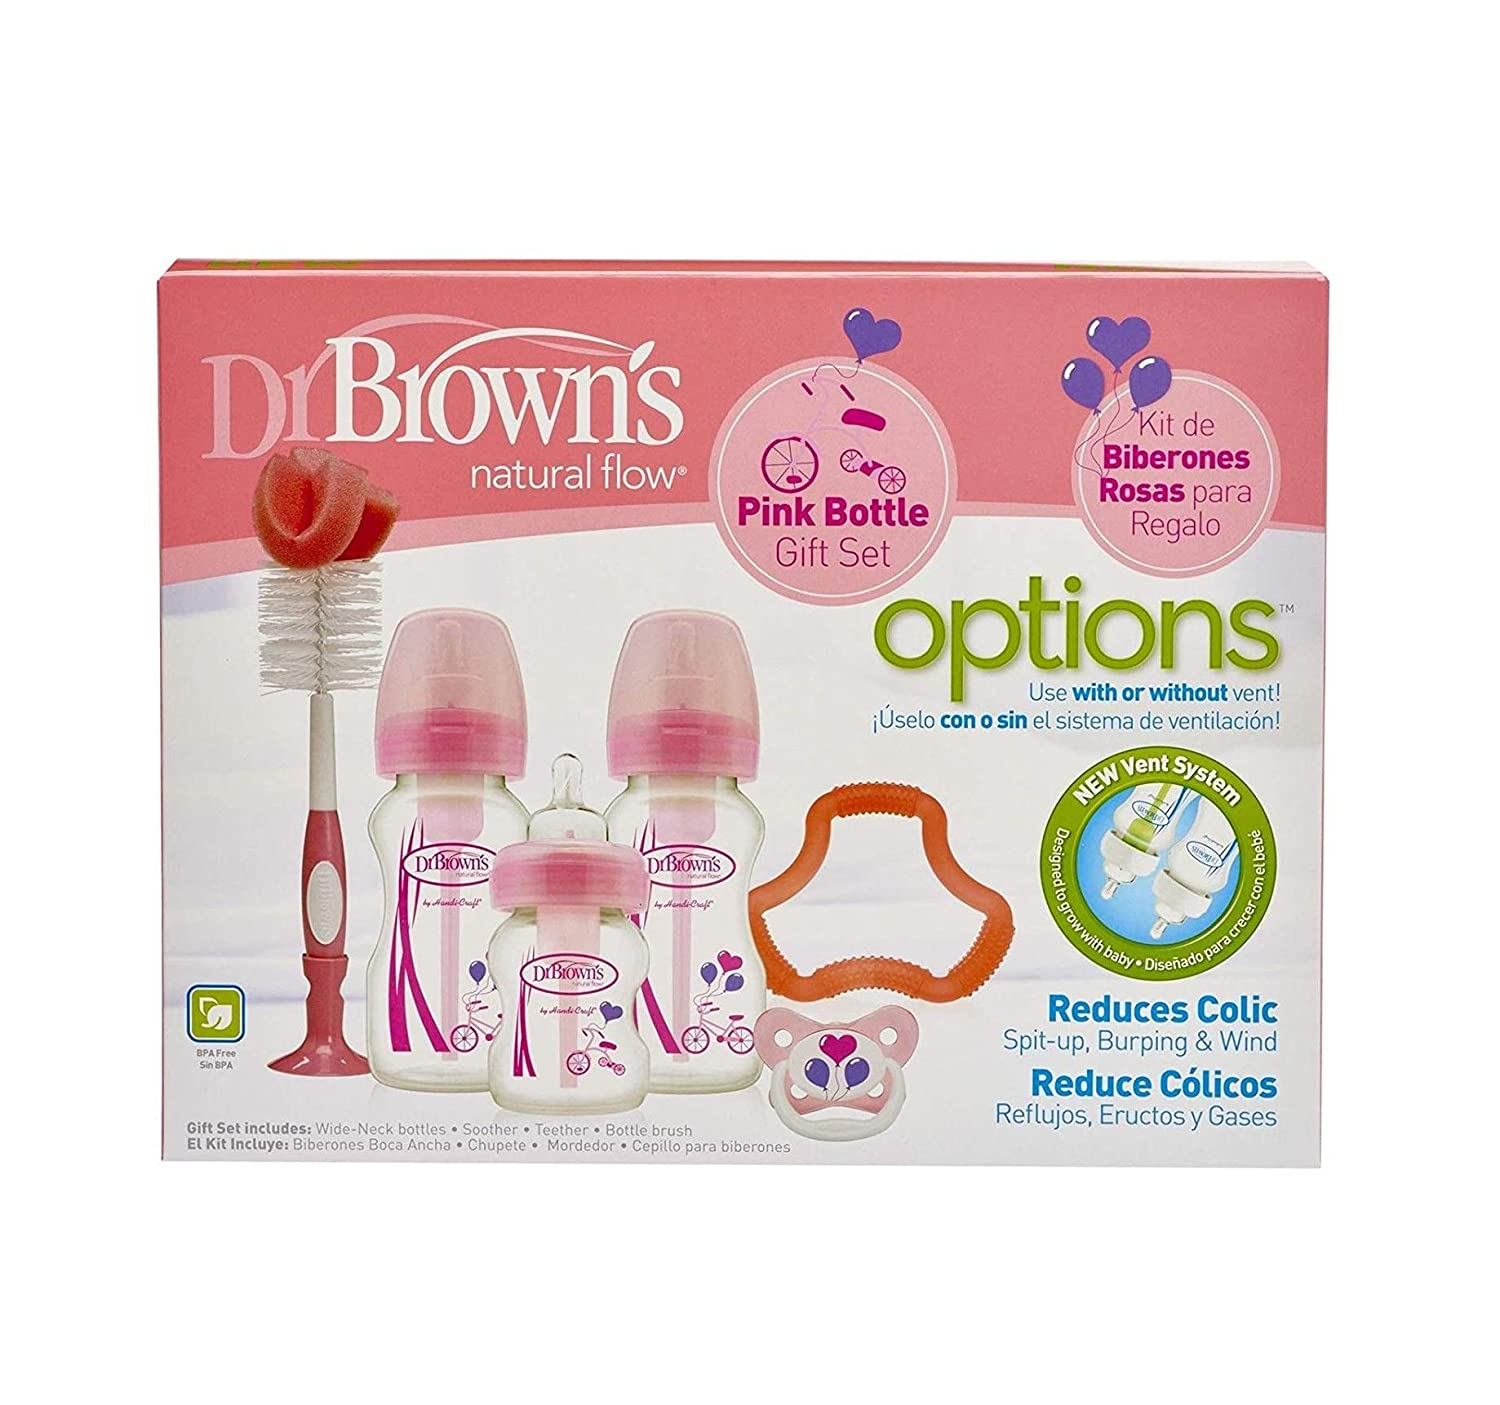 Dr. Browns, 72239306857, Natural Flow, Options, Set de Regalo, Rosa